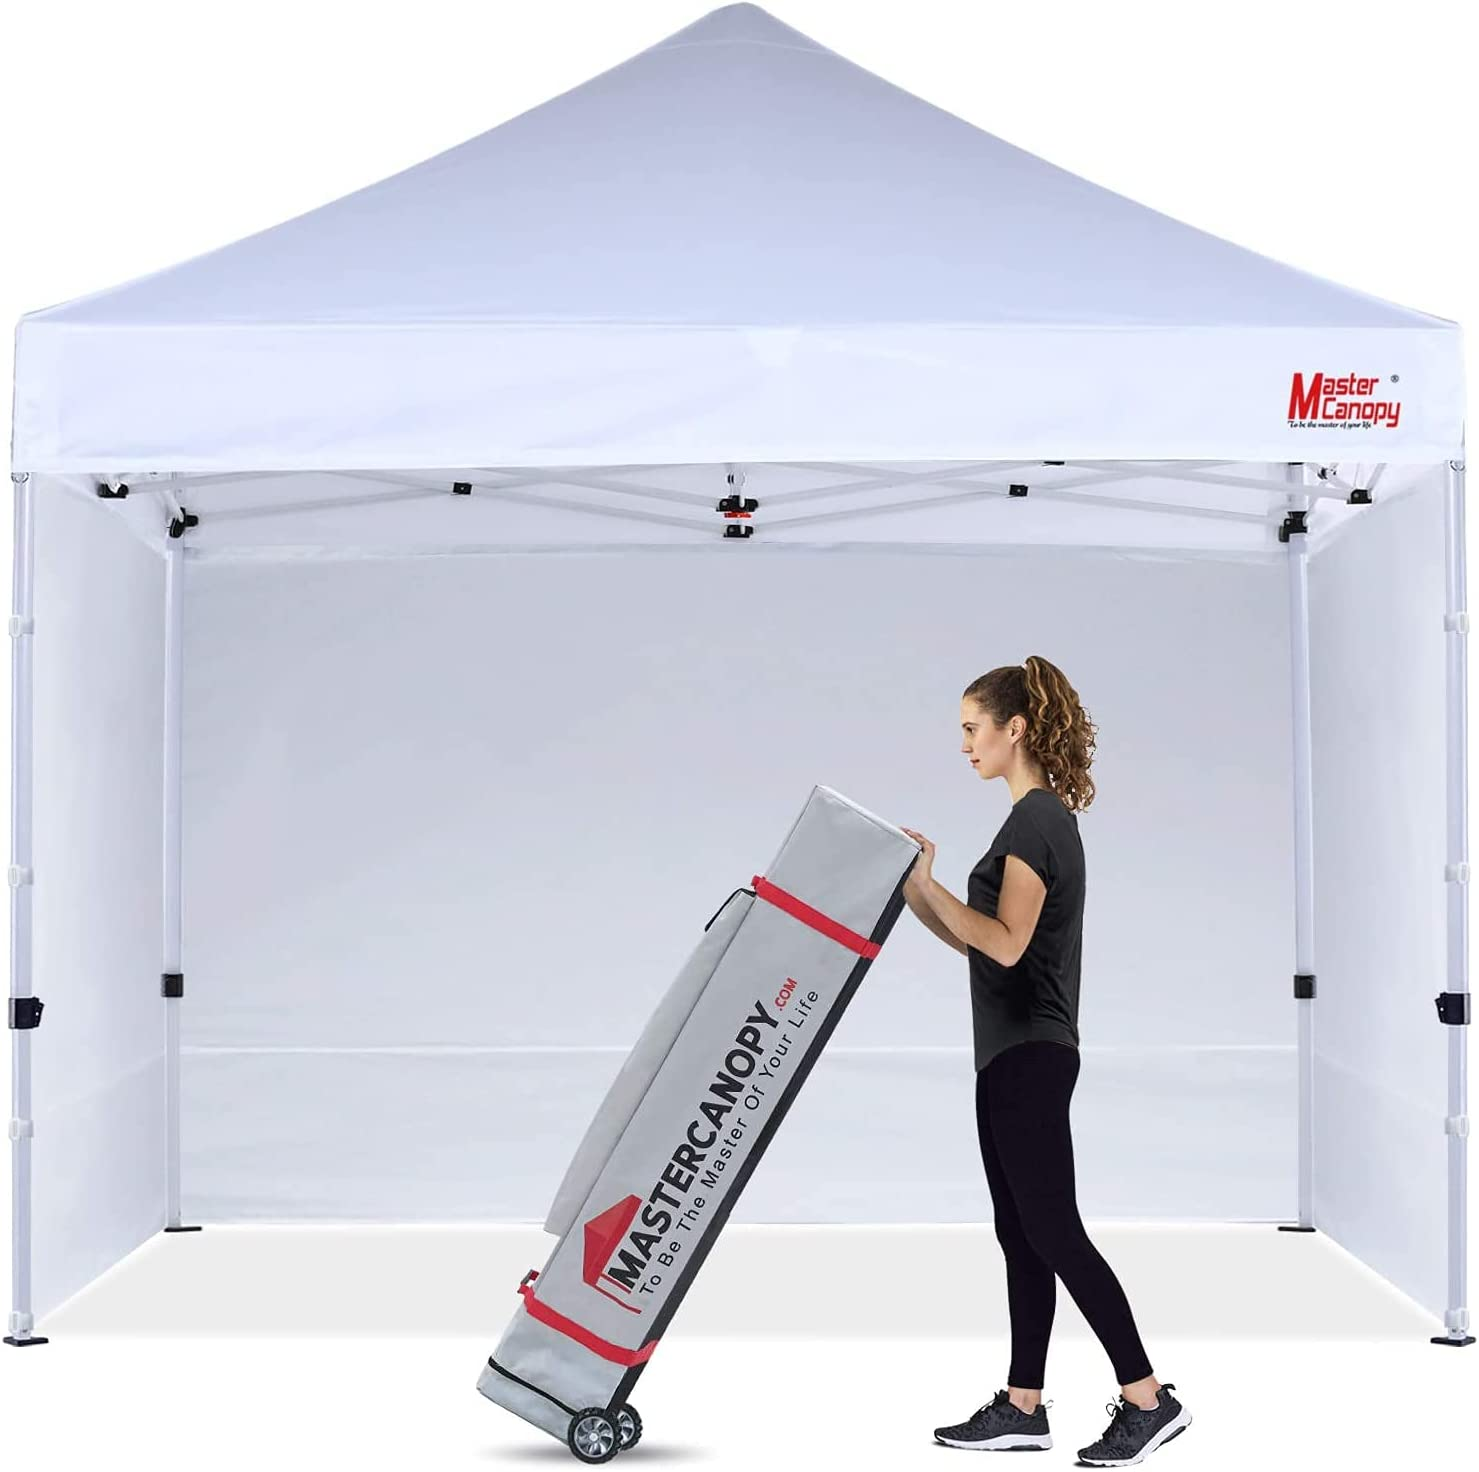 Max 70% OFF MASTERCANOPY Durable Max 78% OFF Pop-up Canopy Tent Heavy Instant Duty 10x10